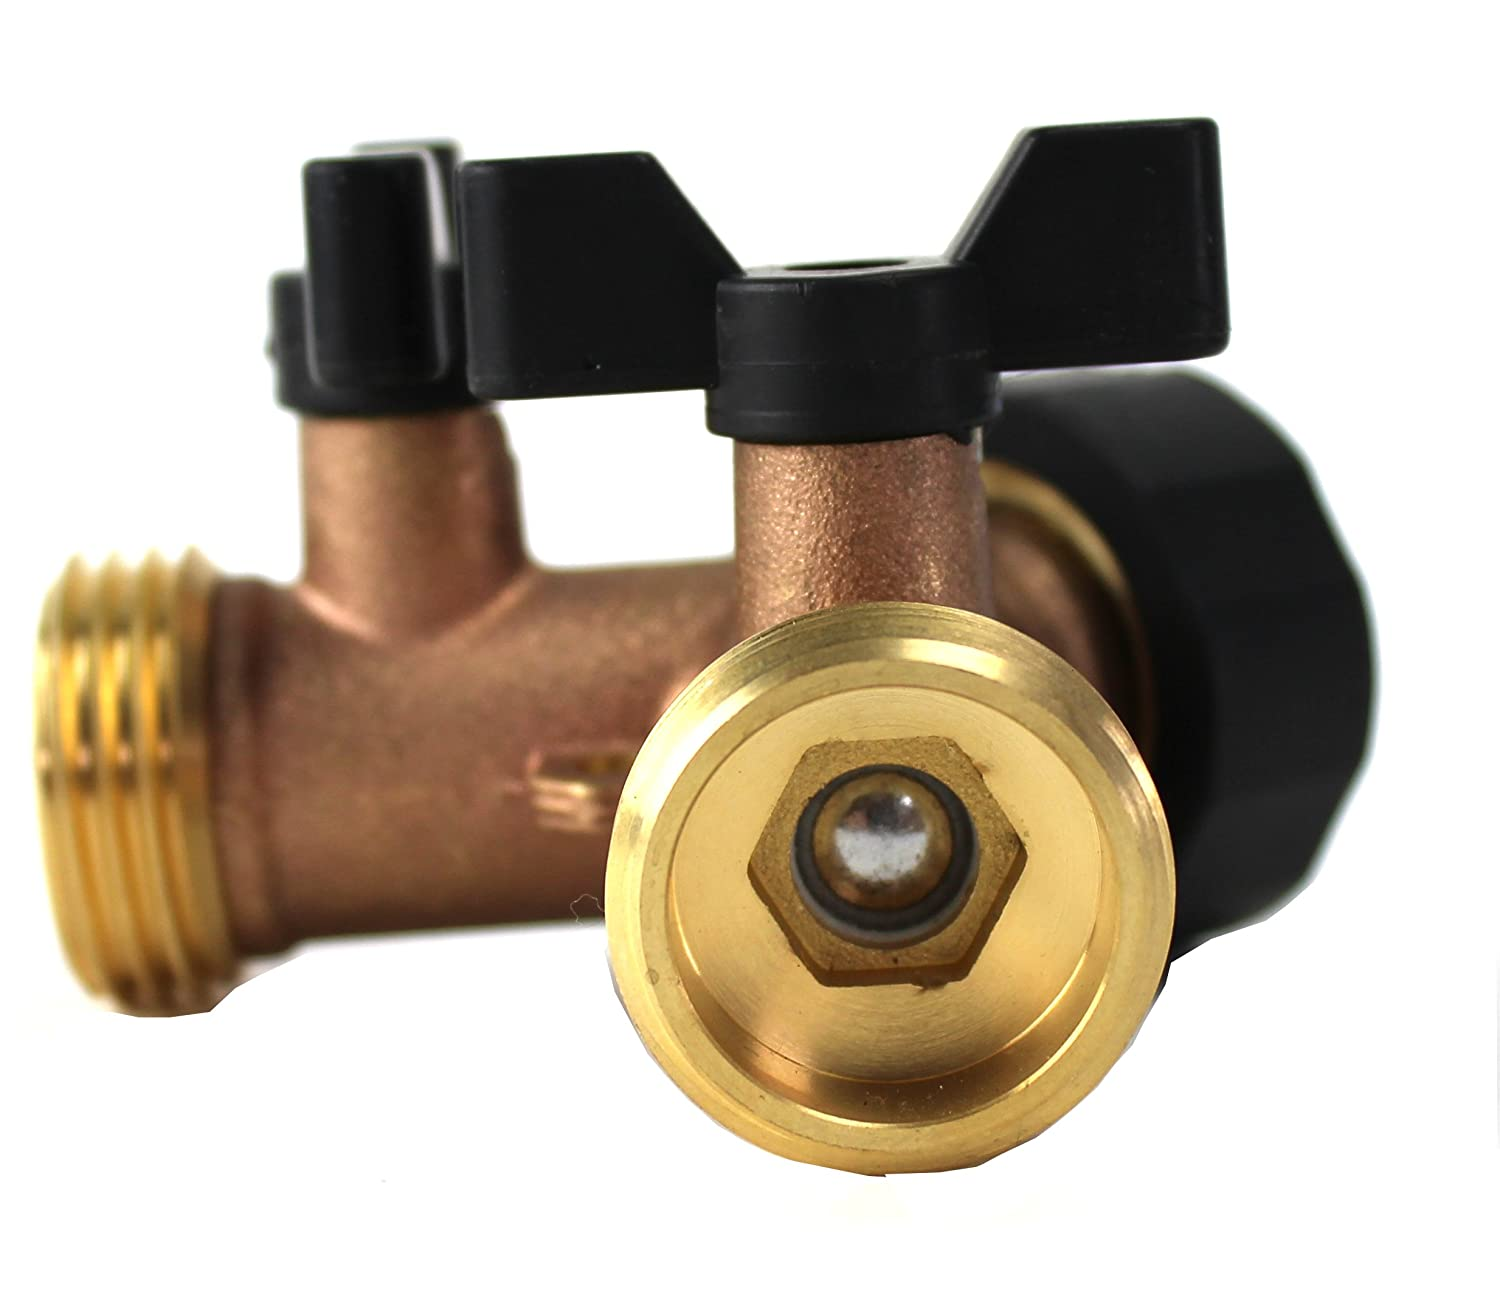 Amazon.com : Kasian House Heavy Duty Brass Garden Hose Splitter, Y ...